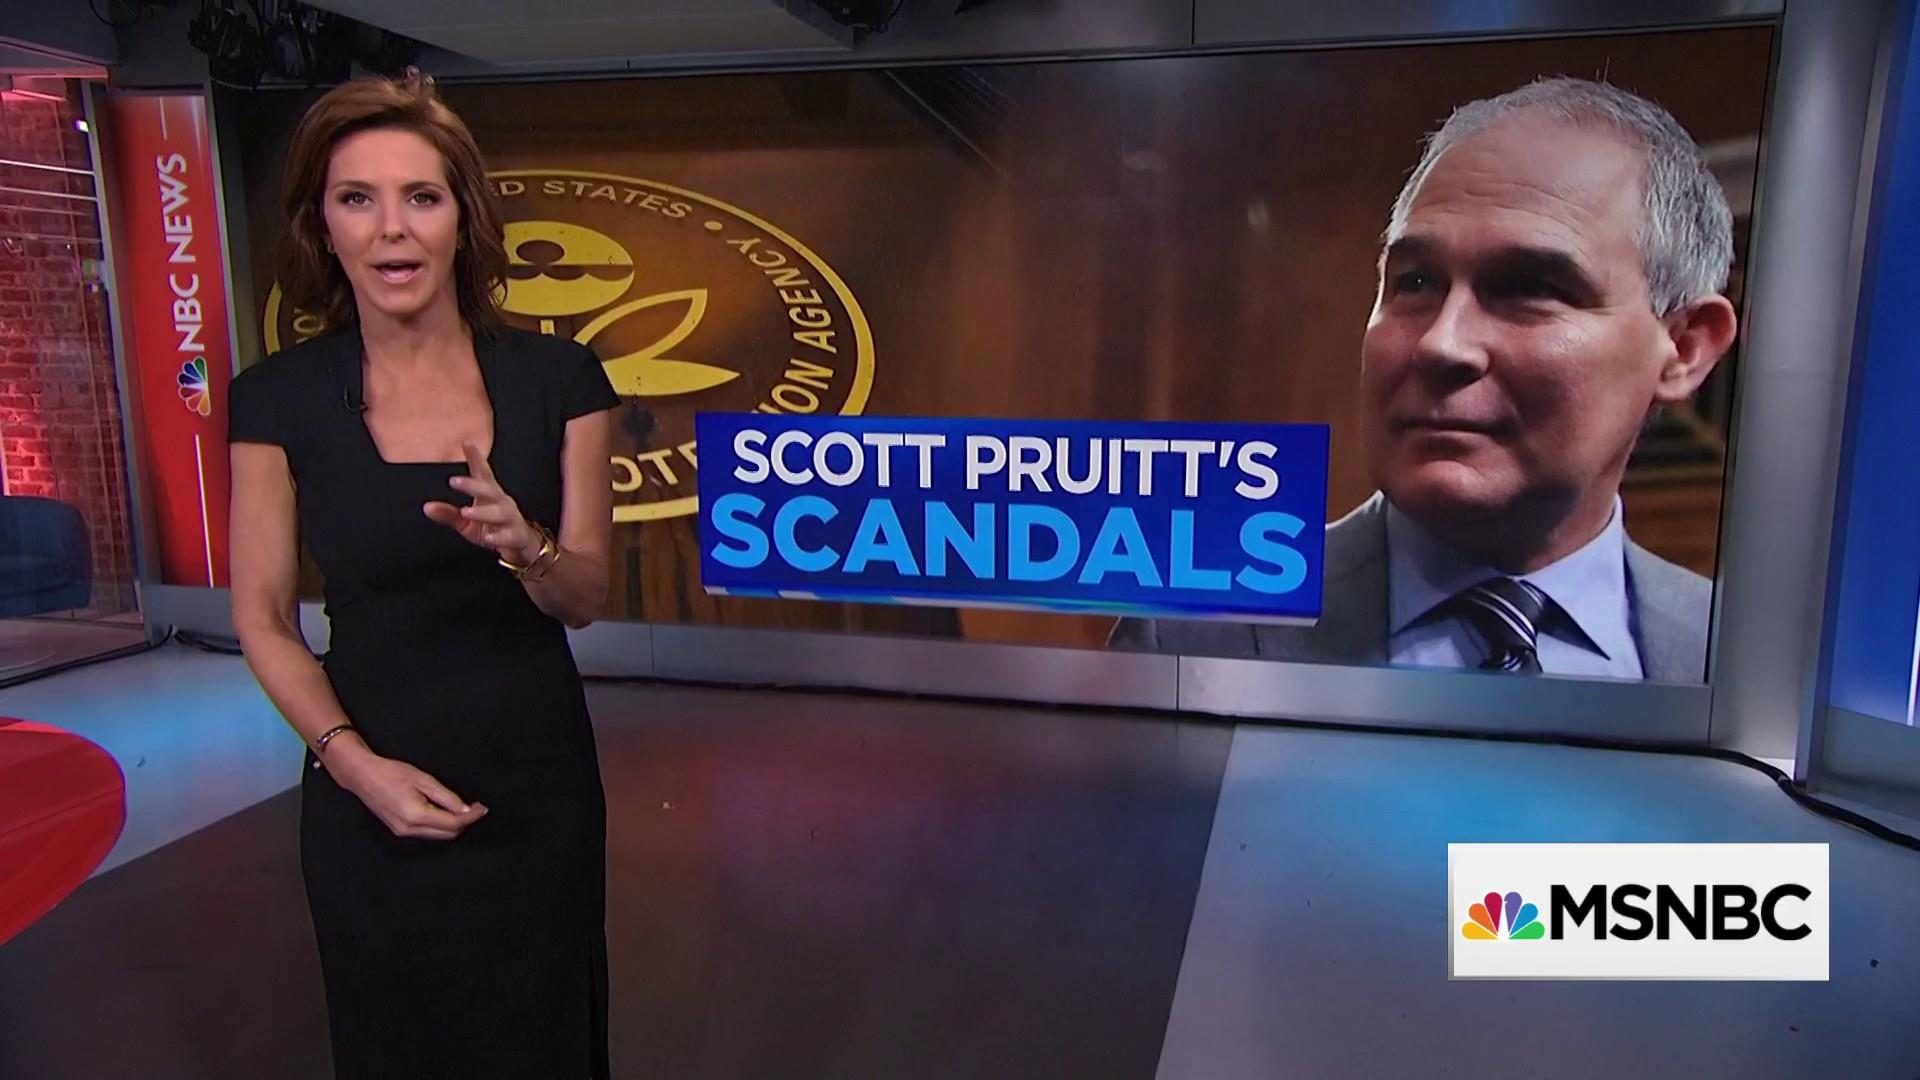 Pruitt's potential conflicts of interest and ethics violations